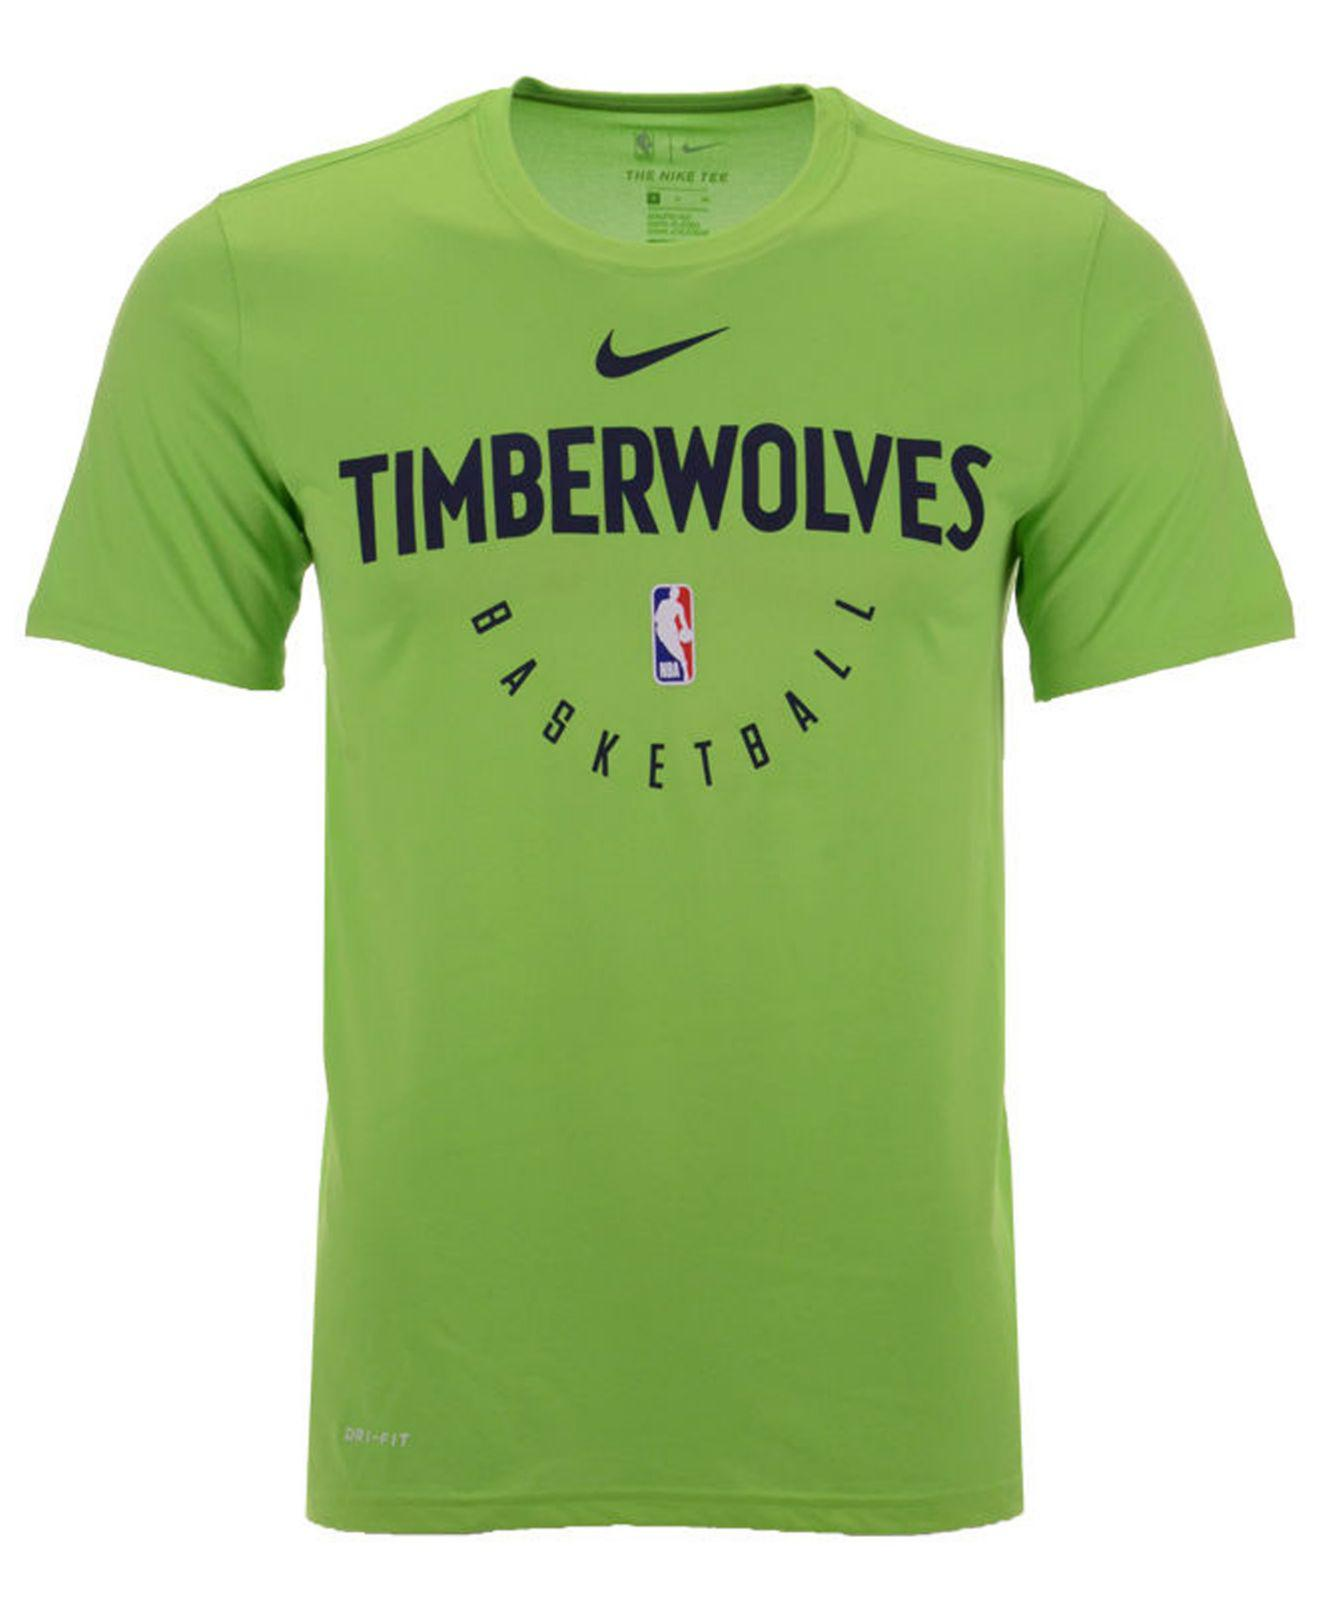 00912a3dfd7 Lyst - Nike Minnesota Timberwolves Practice Essential T-shirt in ...